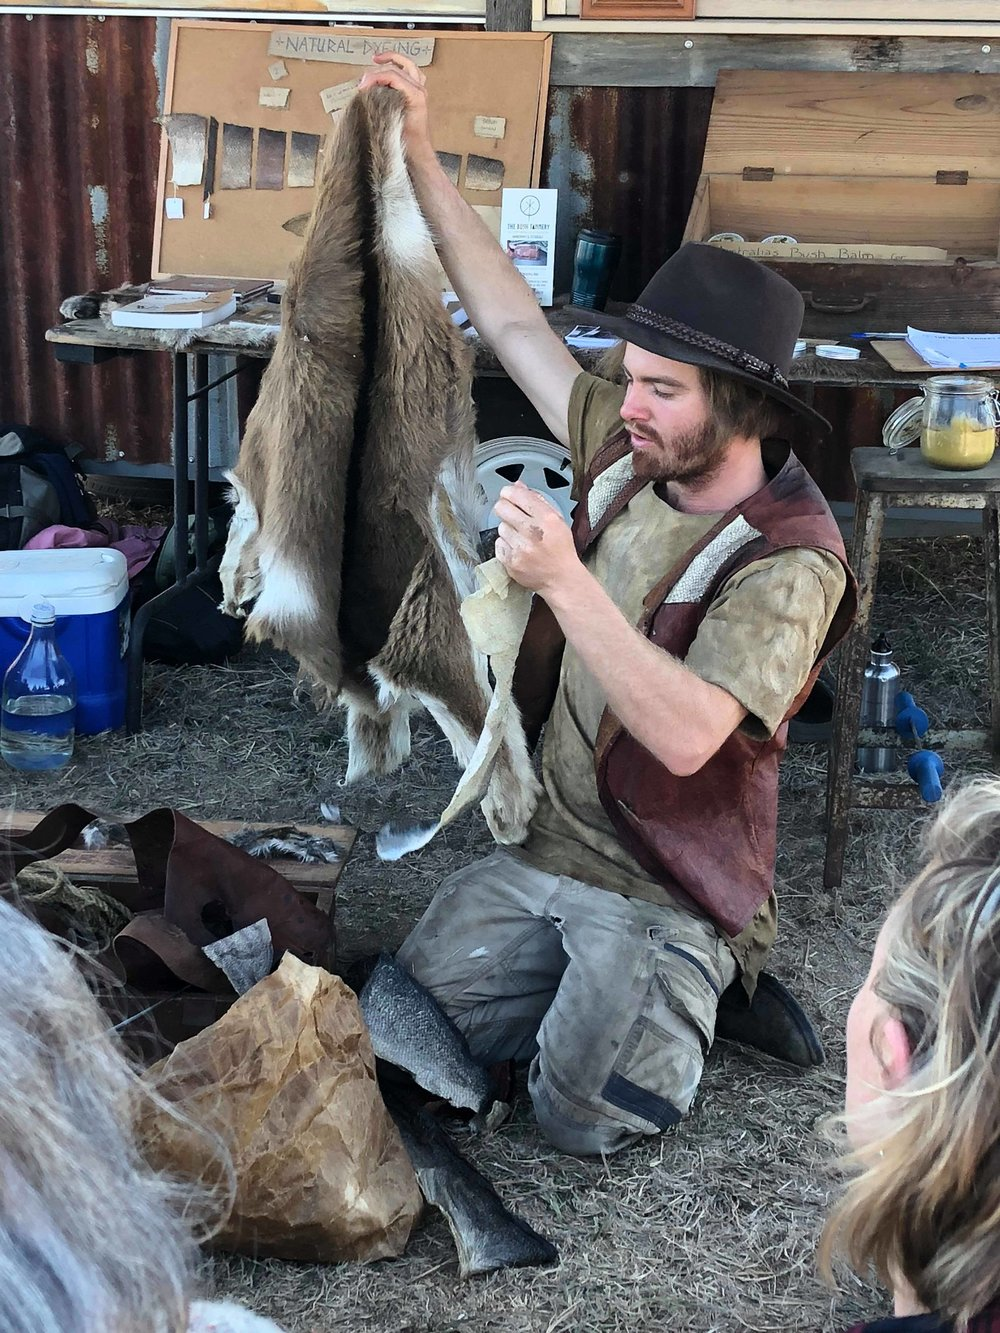 Pictured: Josh (your friendly facilitator), holding up the fish skins that were tanned by previous students and discussing how methods used on fish are transferred to larger skins such as the goat fur skin he is holding.